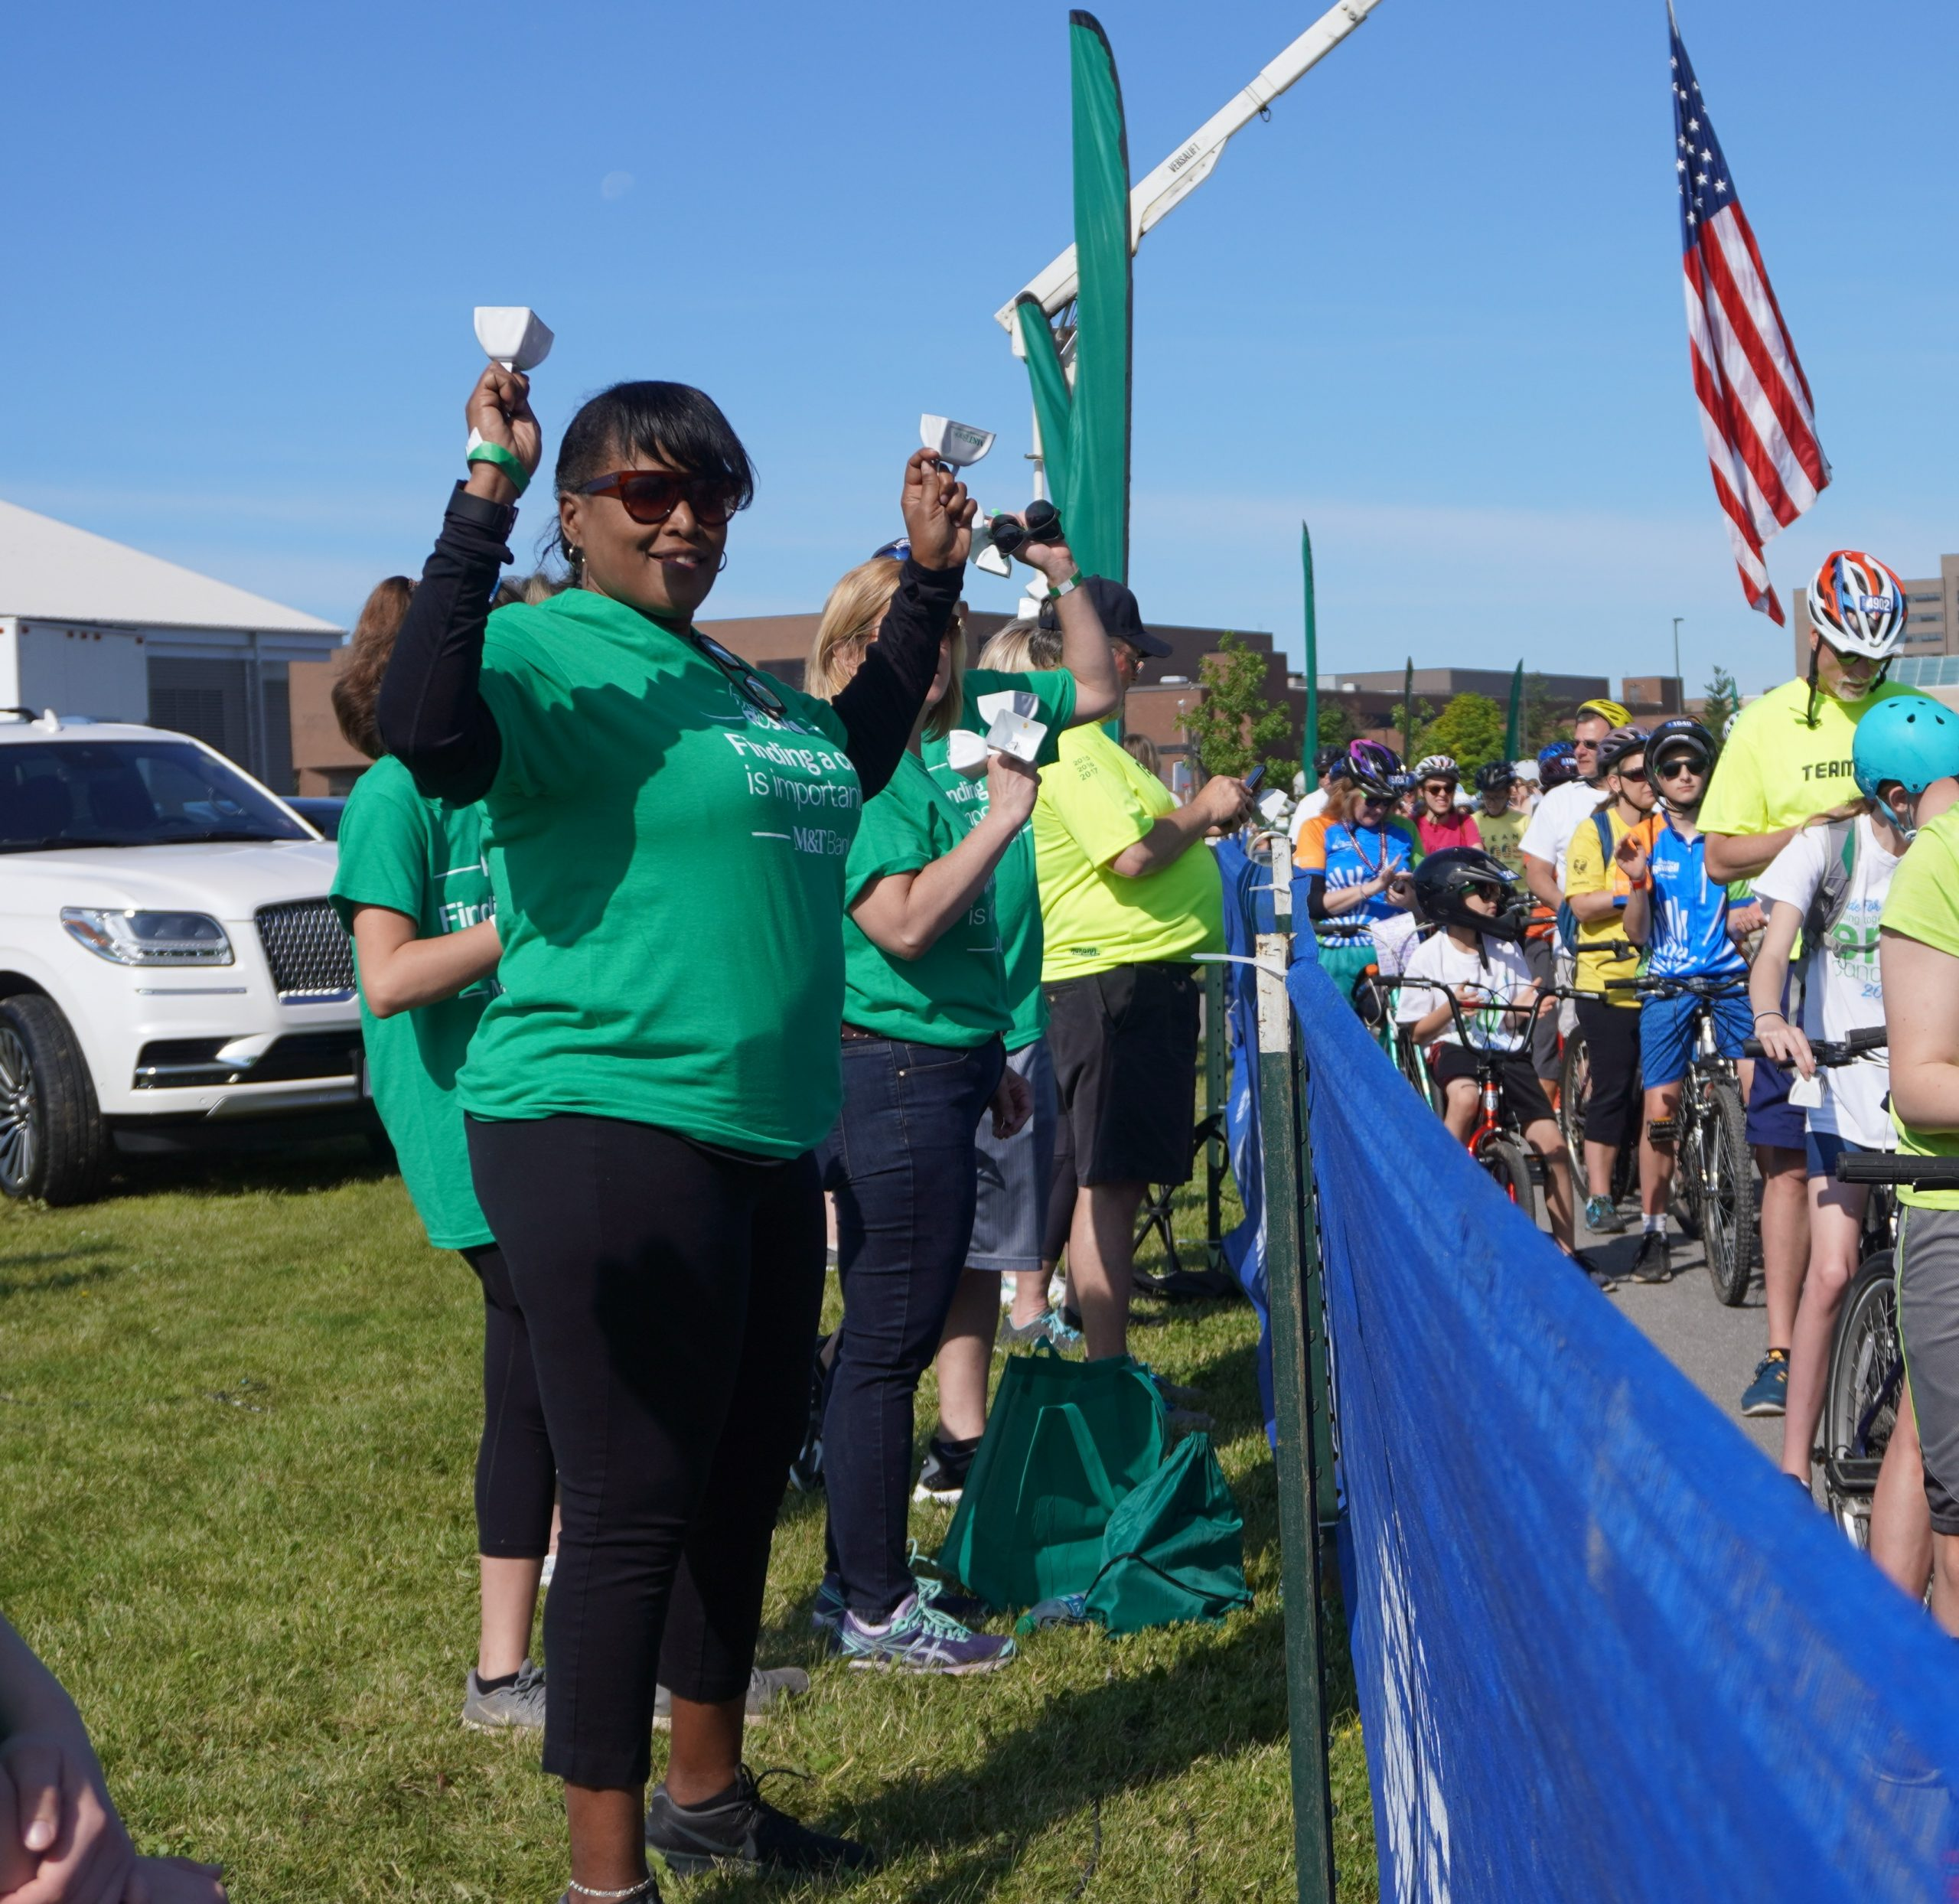 More Cowbell: M&T Bank's Iconic Support for the Ride for Roswell